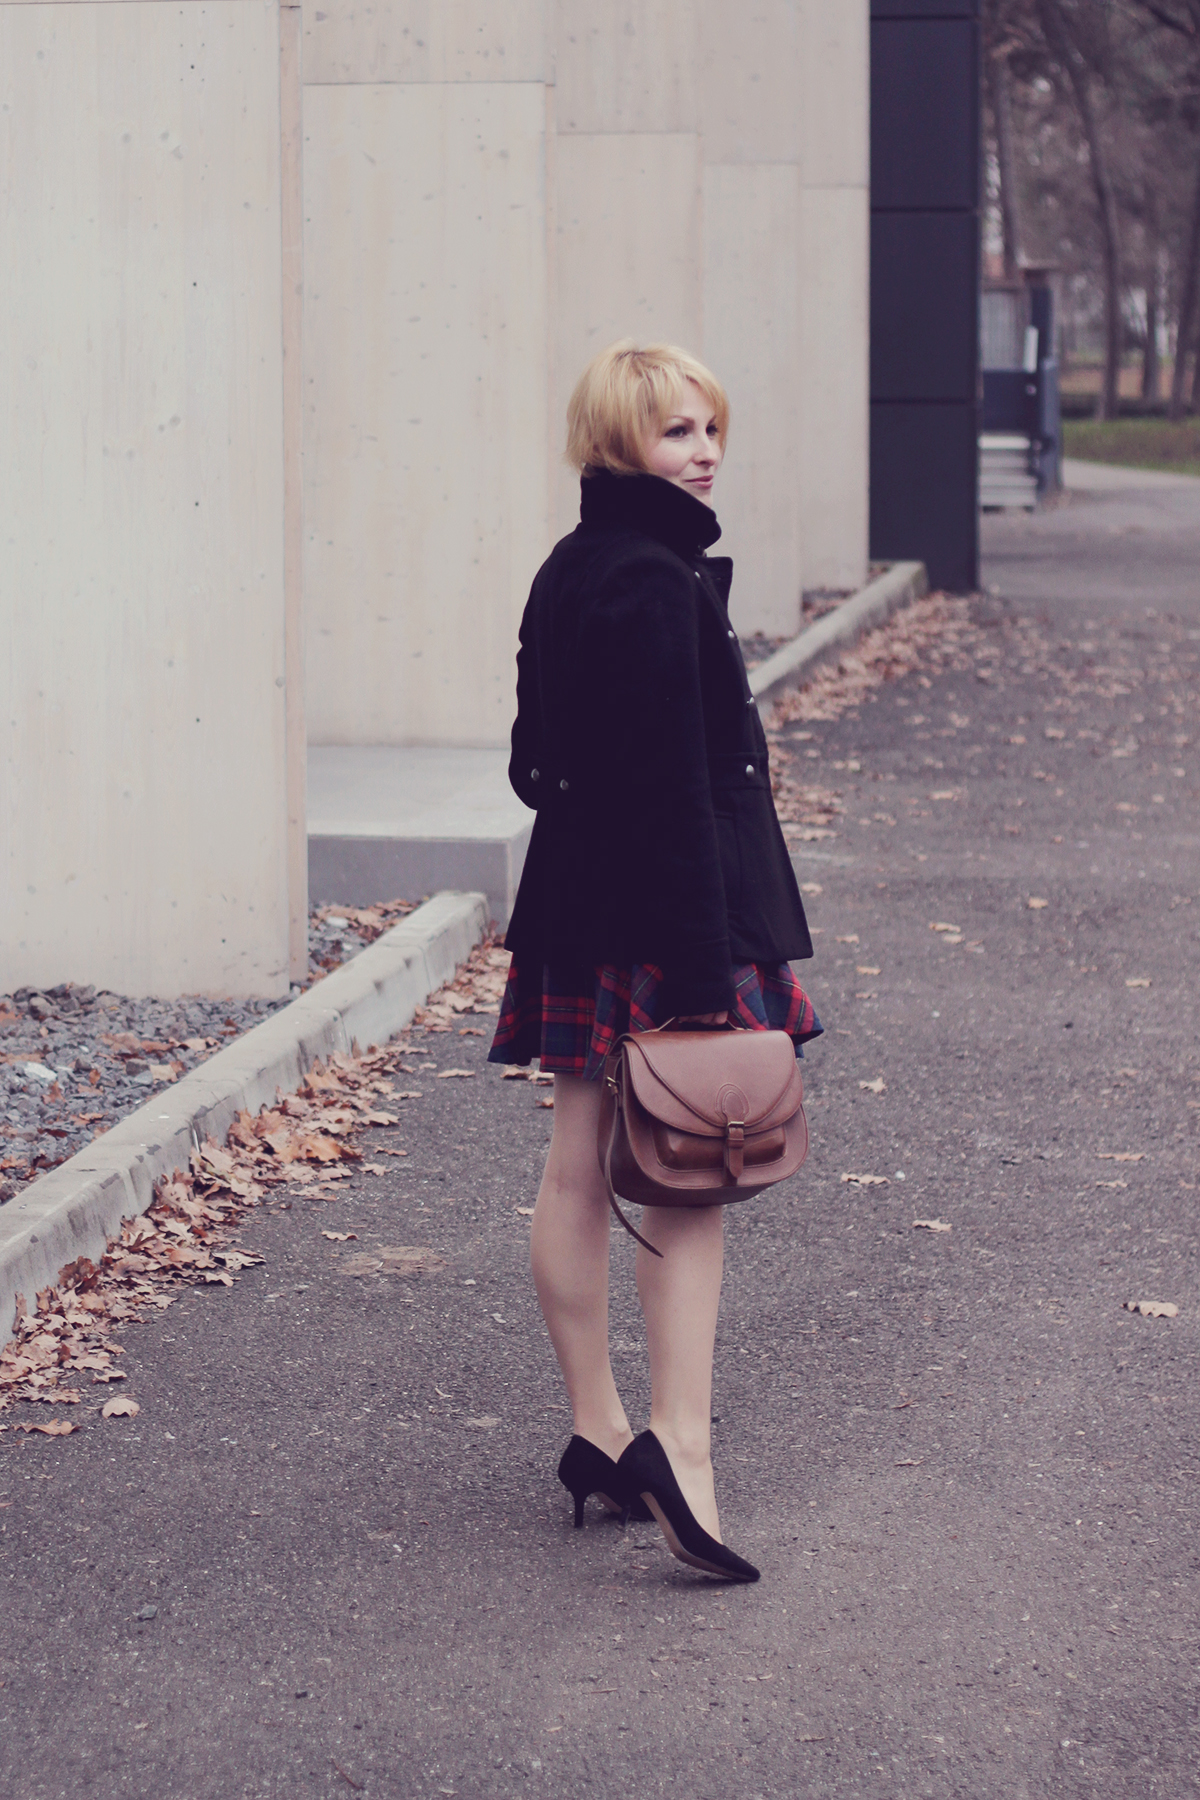 black heels and coat with brown handbag and tartan dress